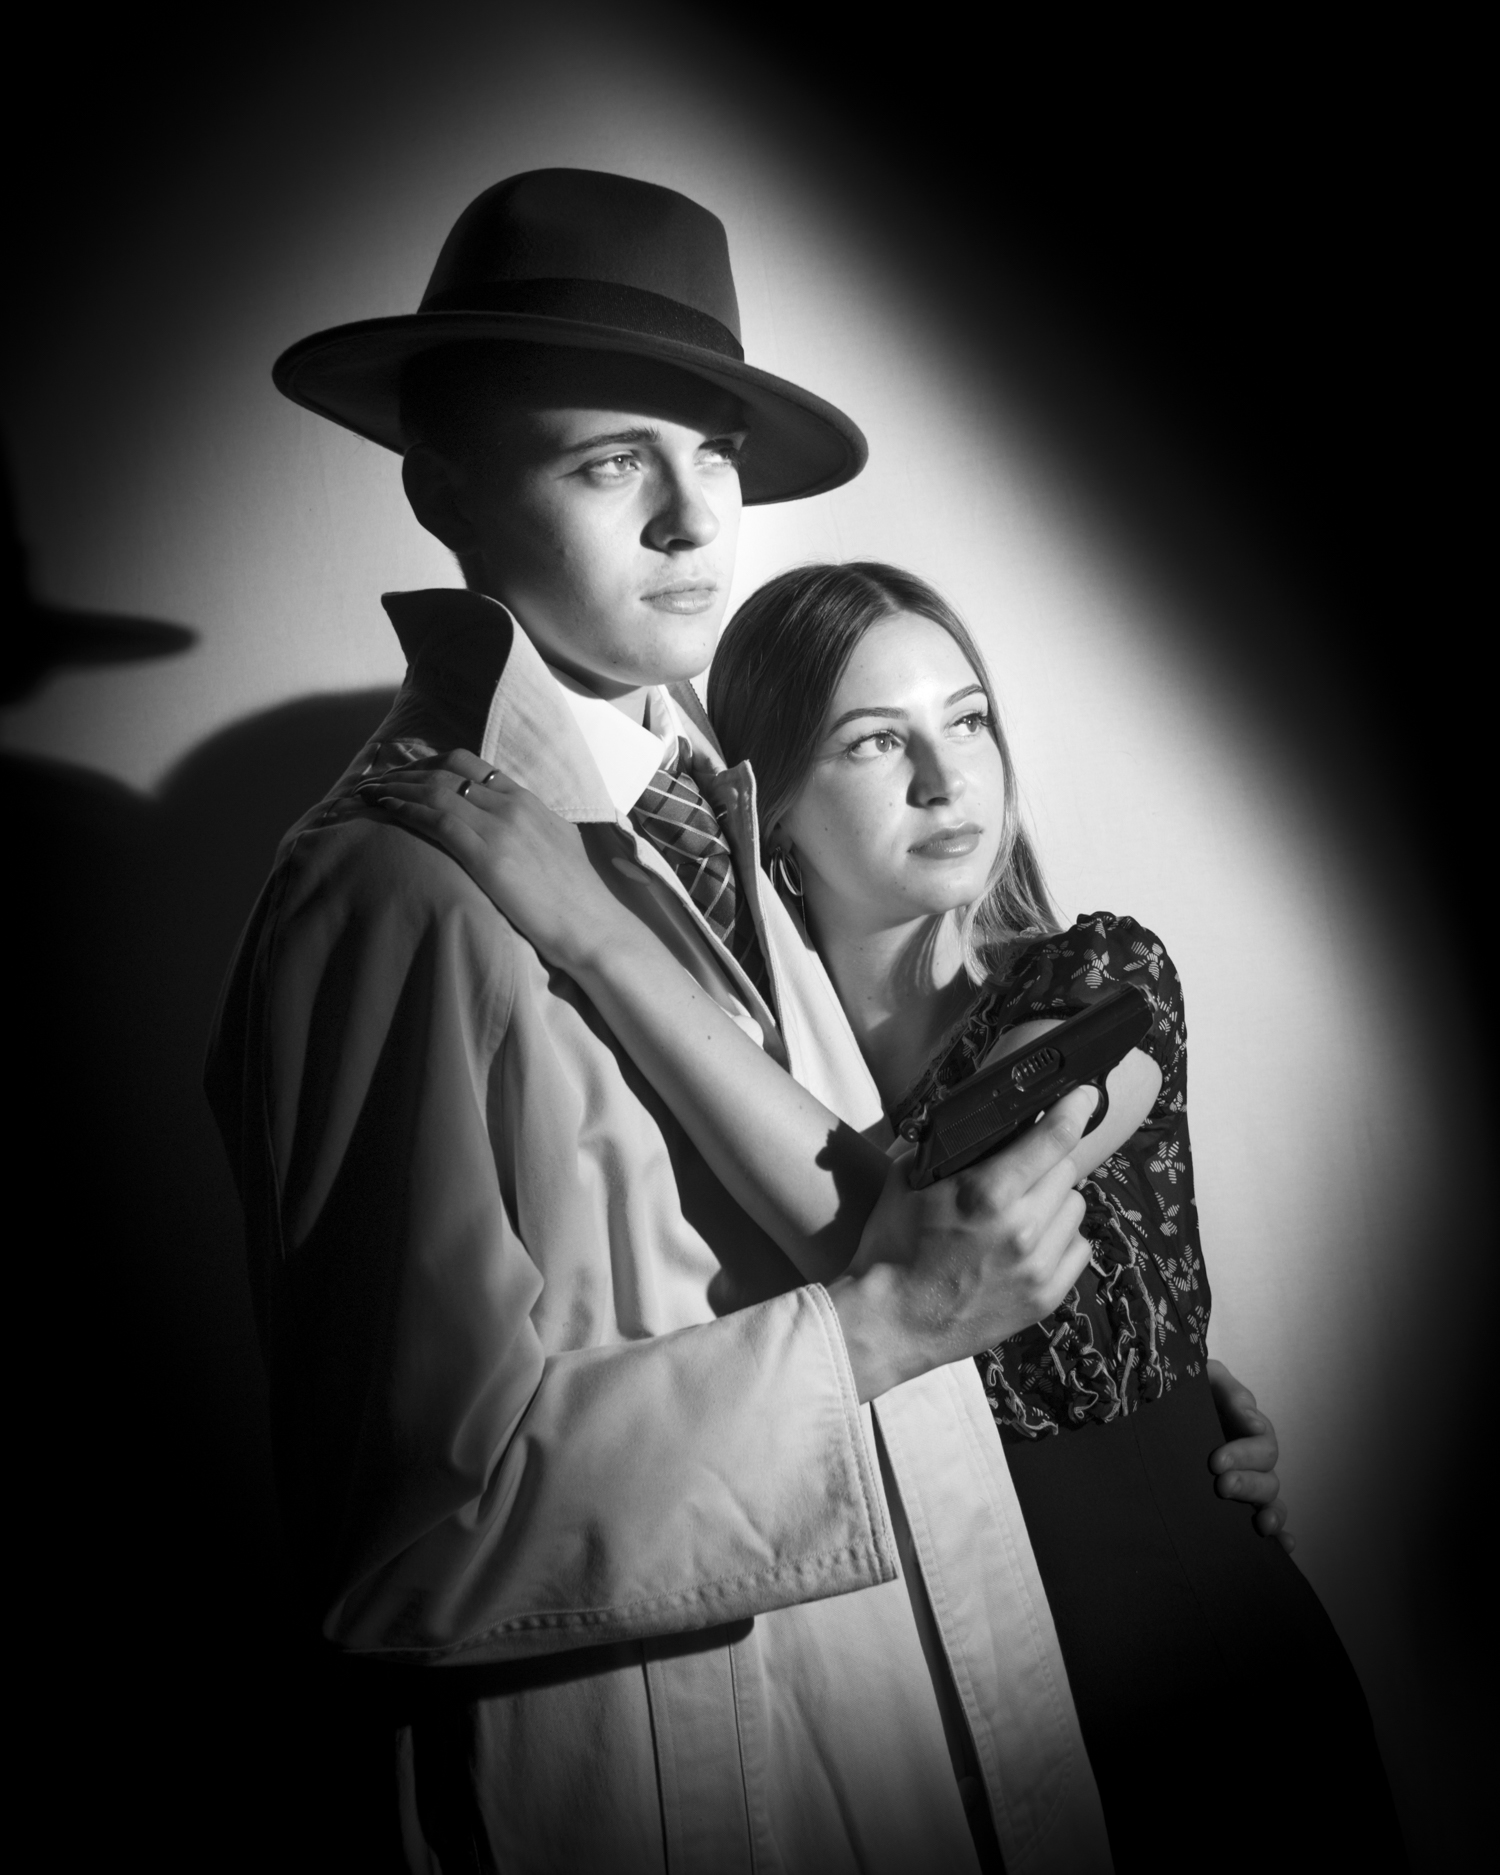 Black and white film noir prints